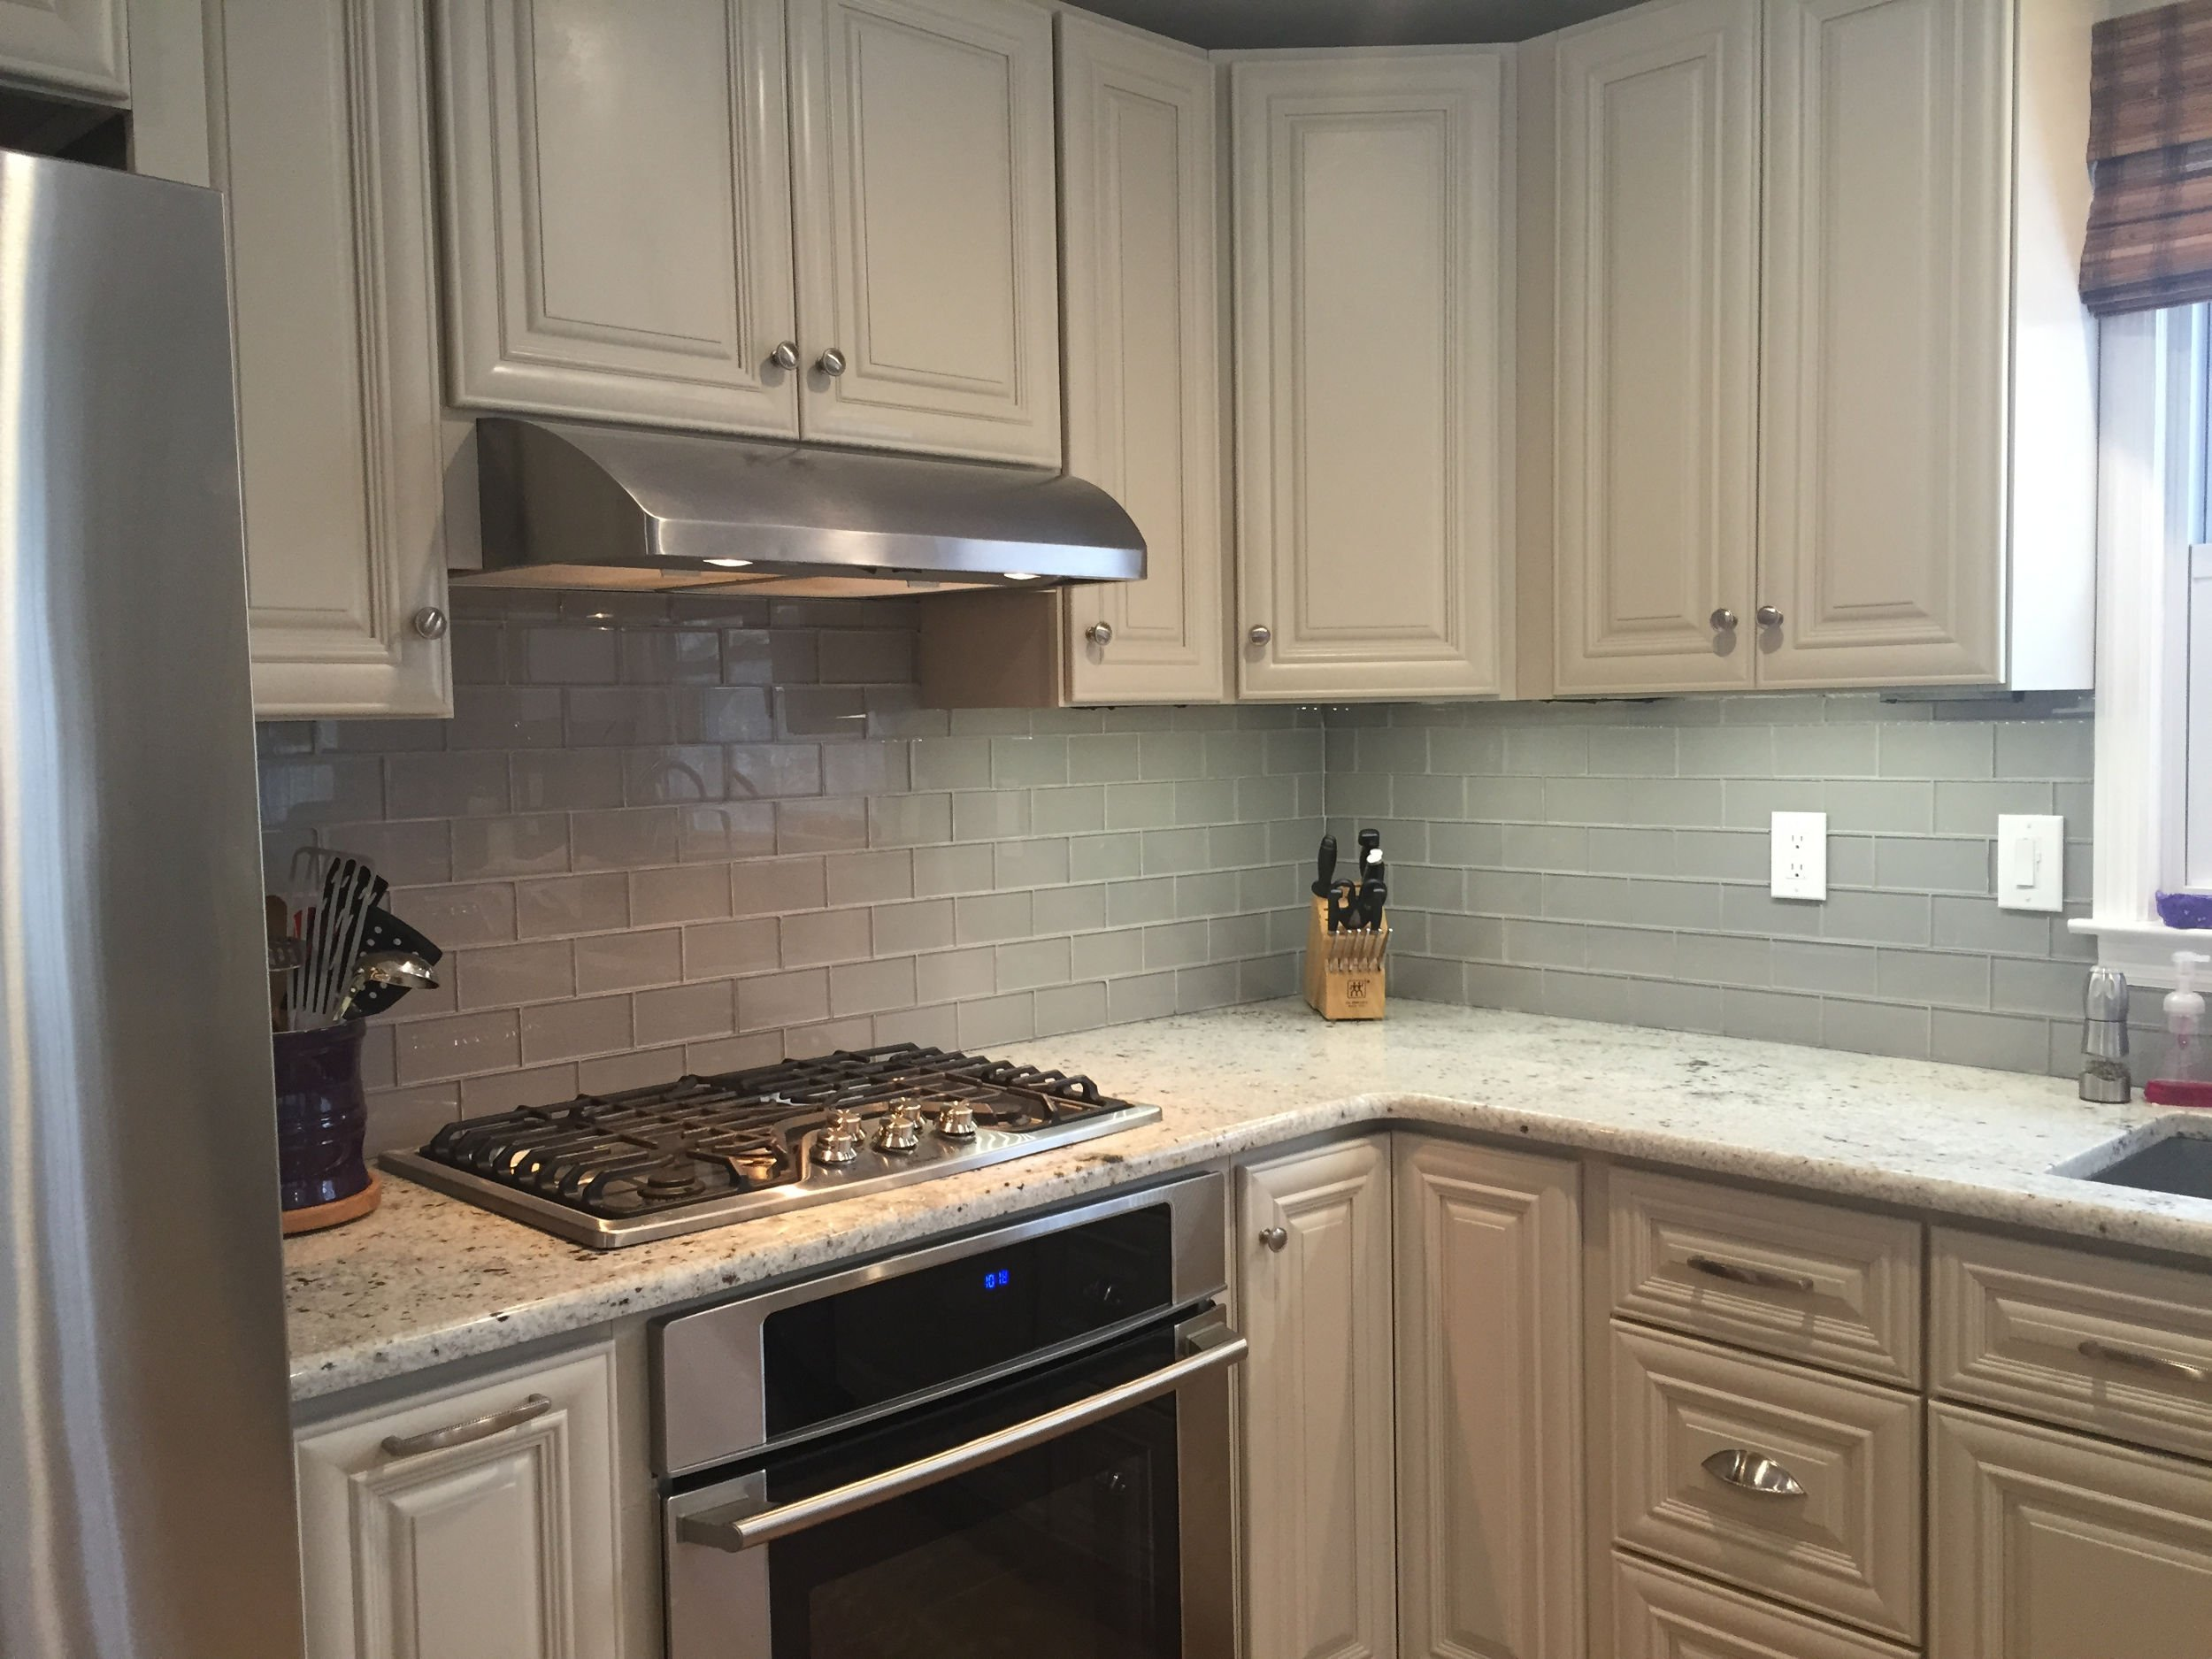 Kitchen Backsplash Glass Tile Accents